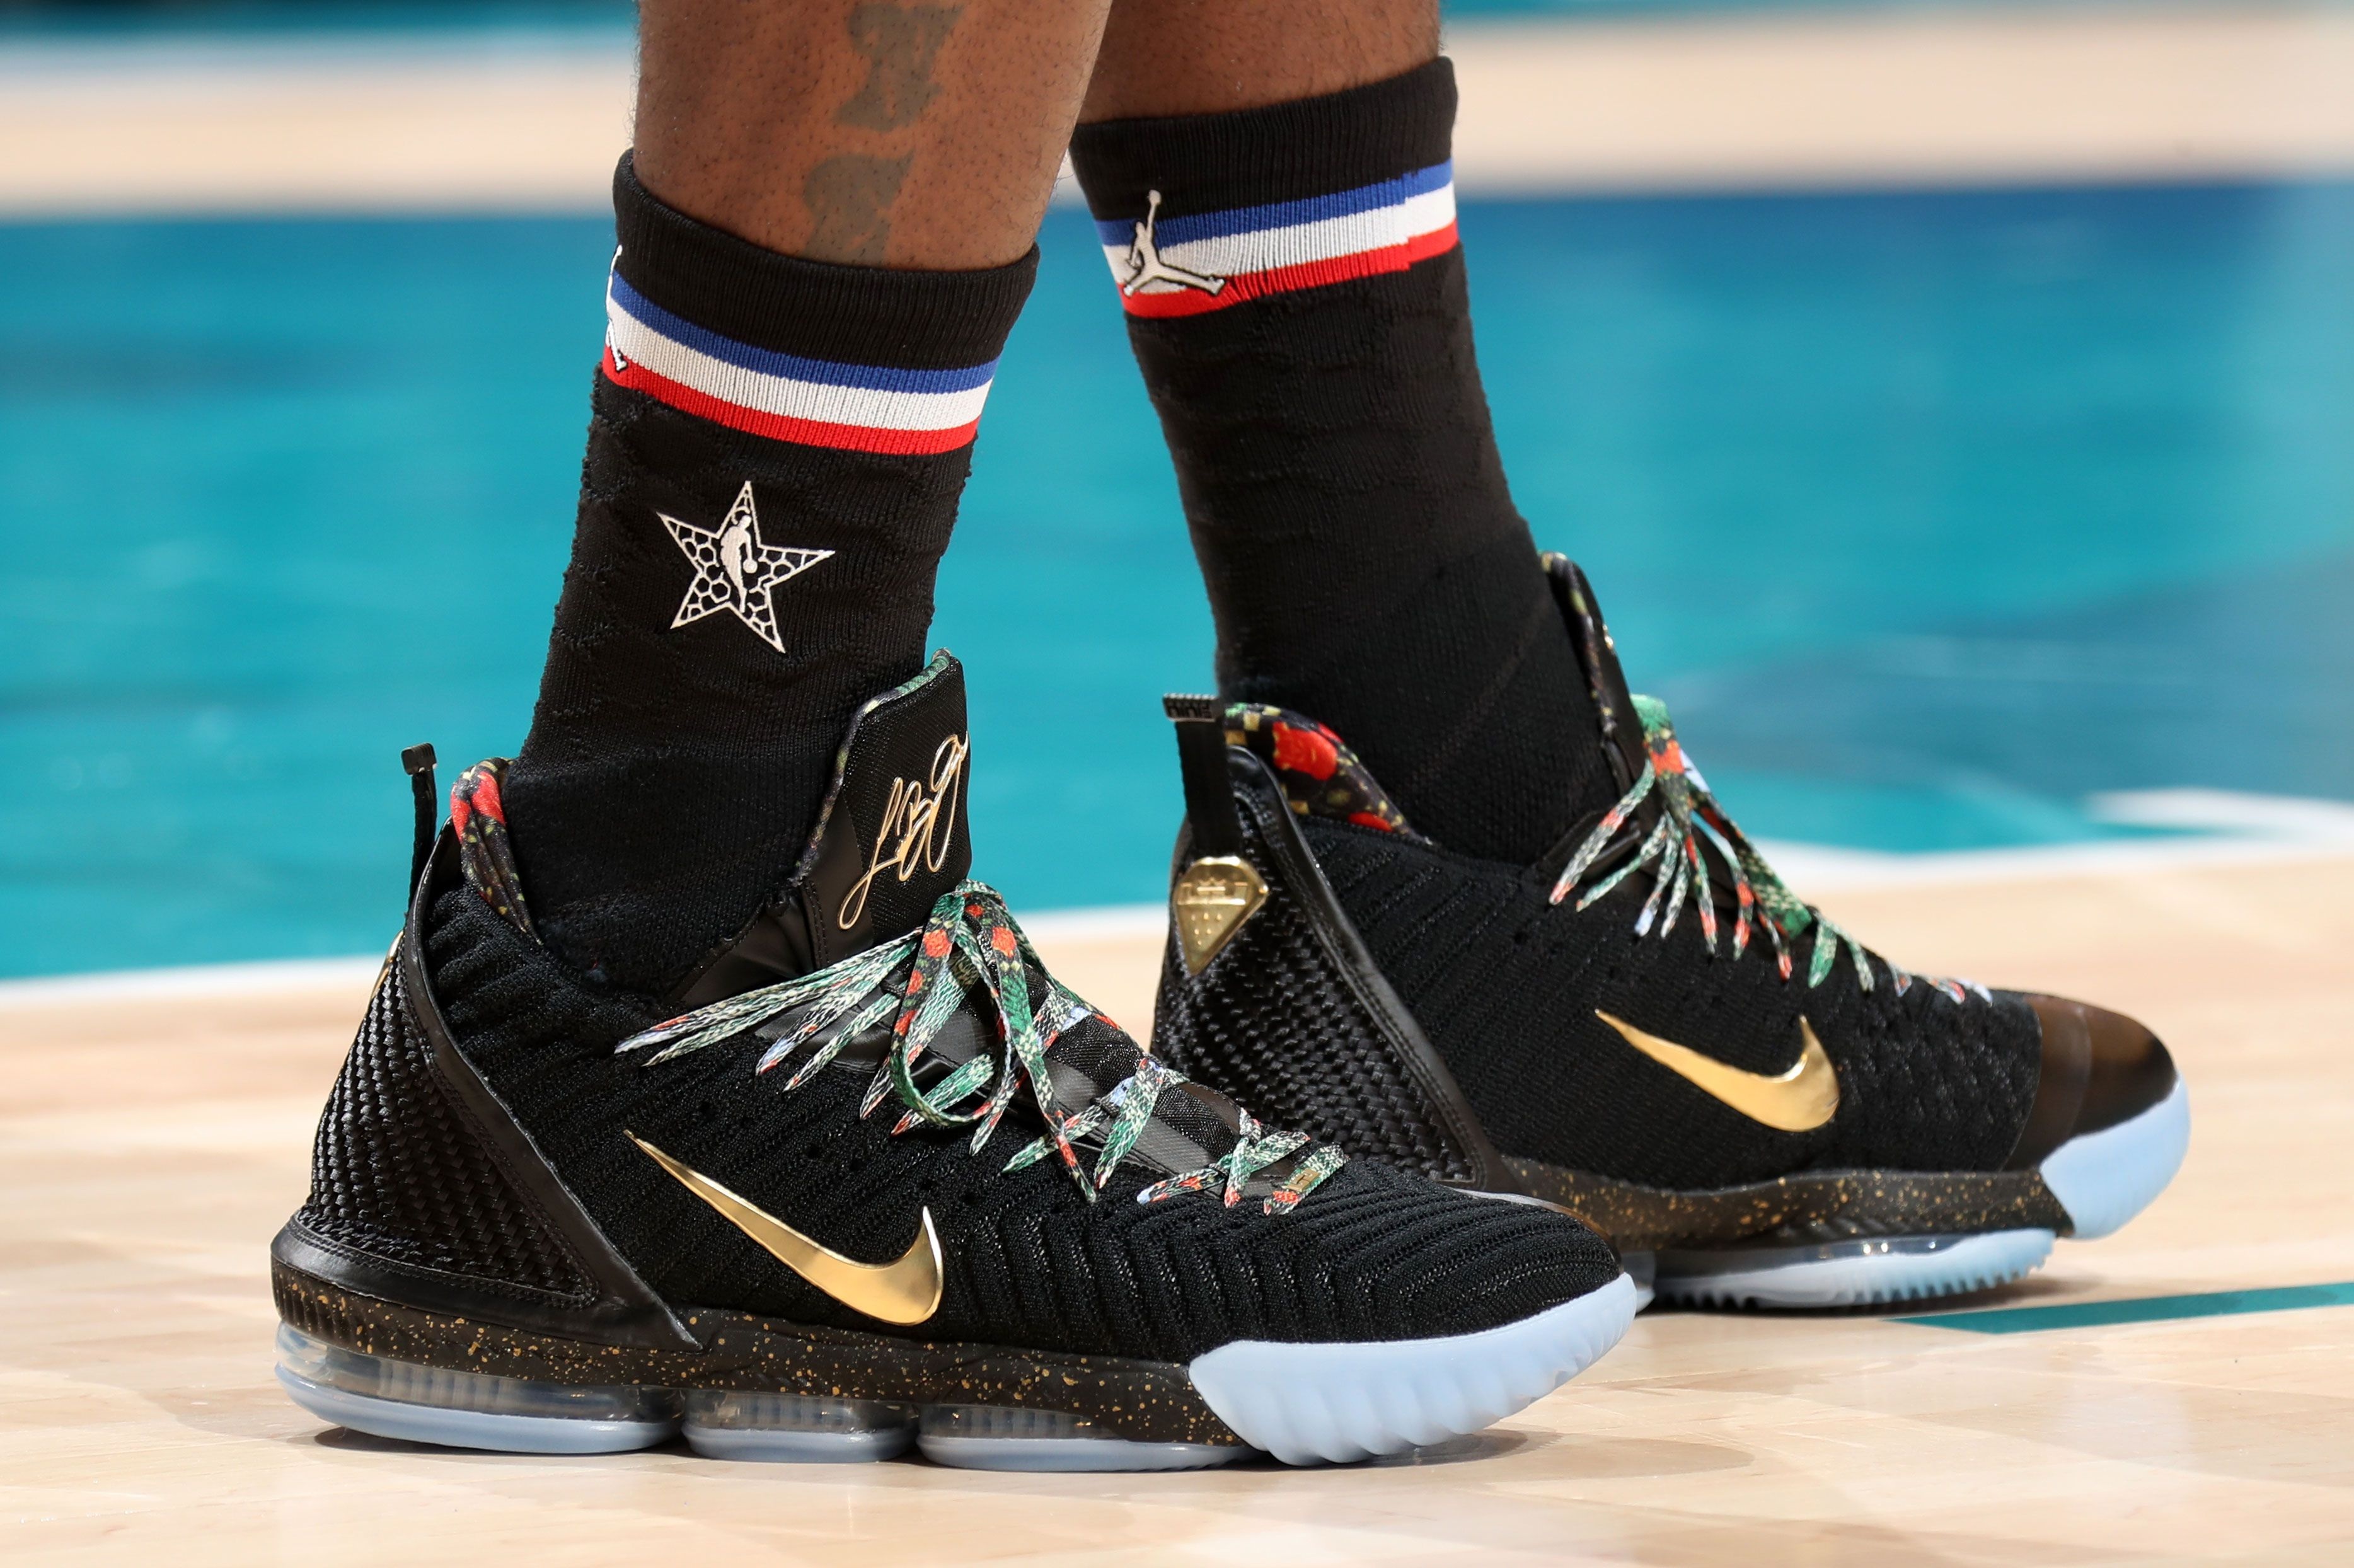 2086b9750be96 Which player had the best sneakers on All-Star Weekend?